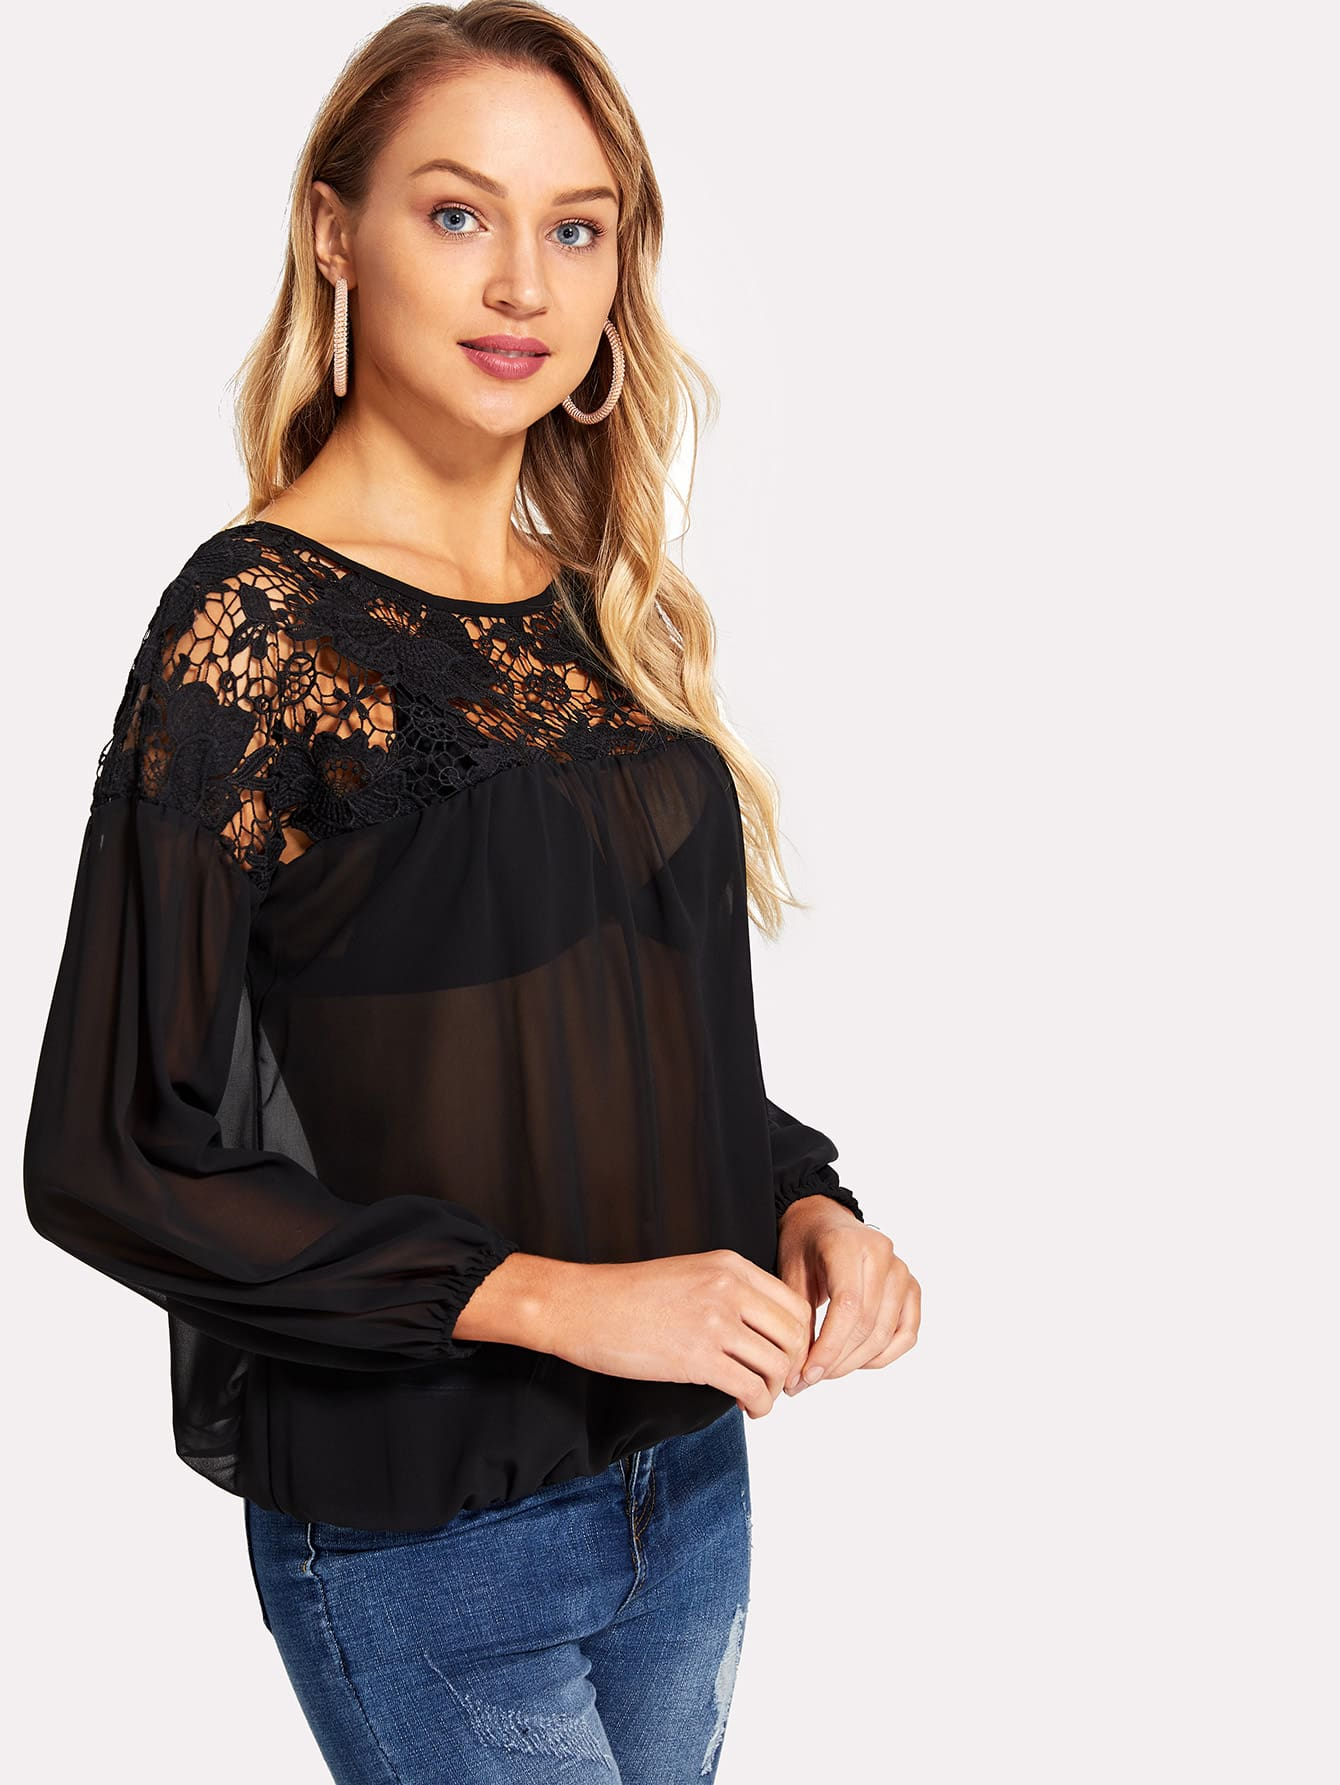 Lace Yoke Sheer Blouson Top lace panel yoke top